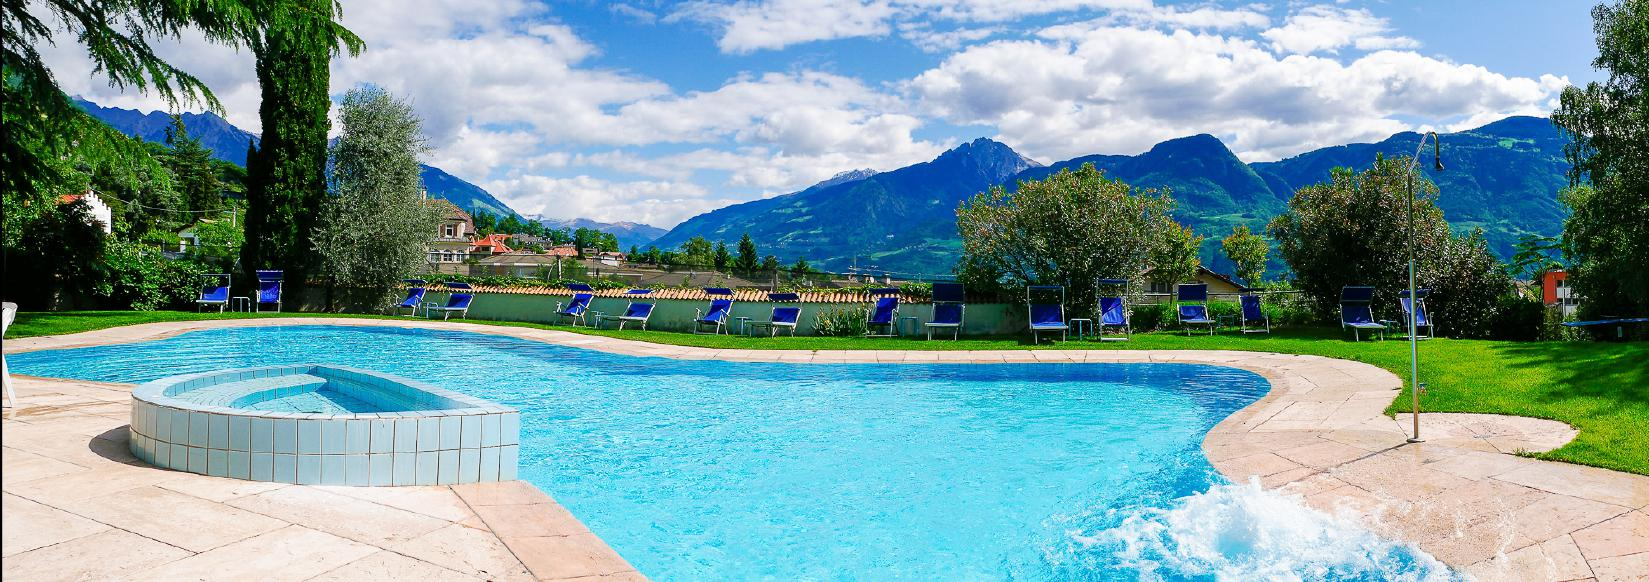 South Tyrol holidays with that Southern Mediterranean allure